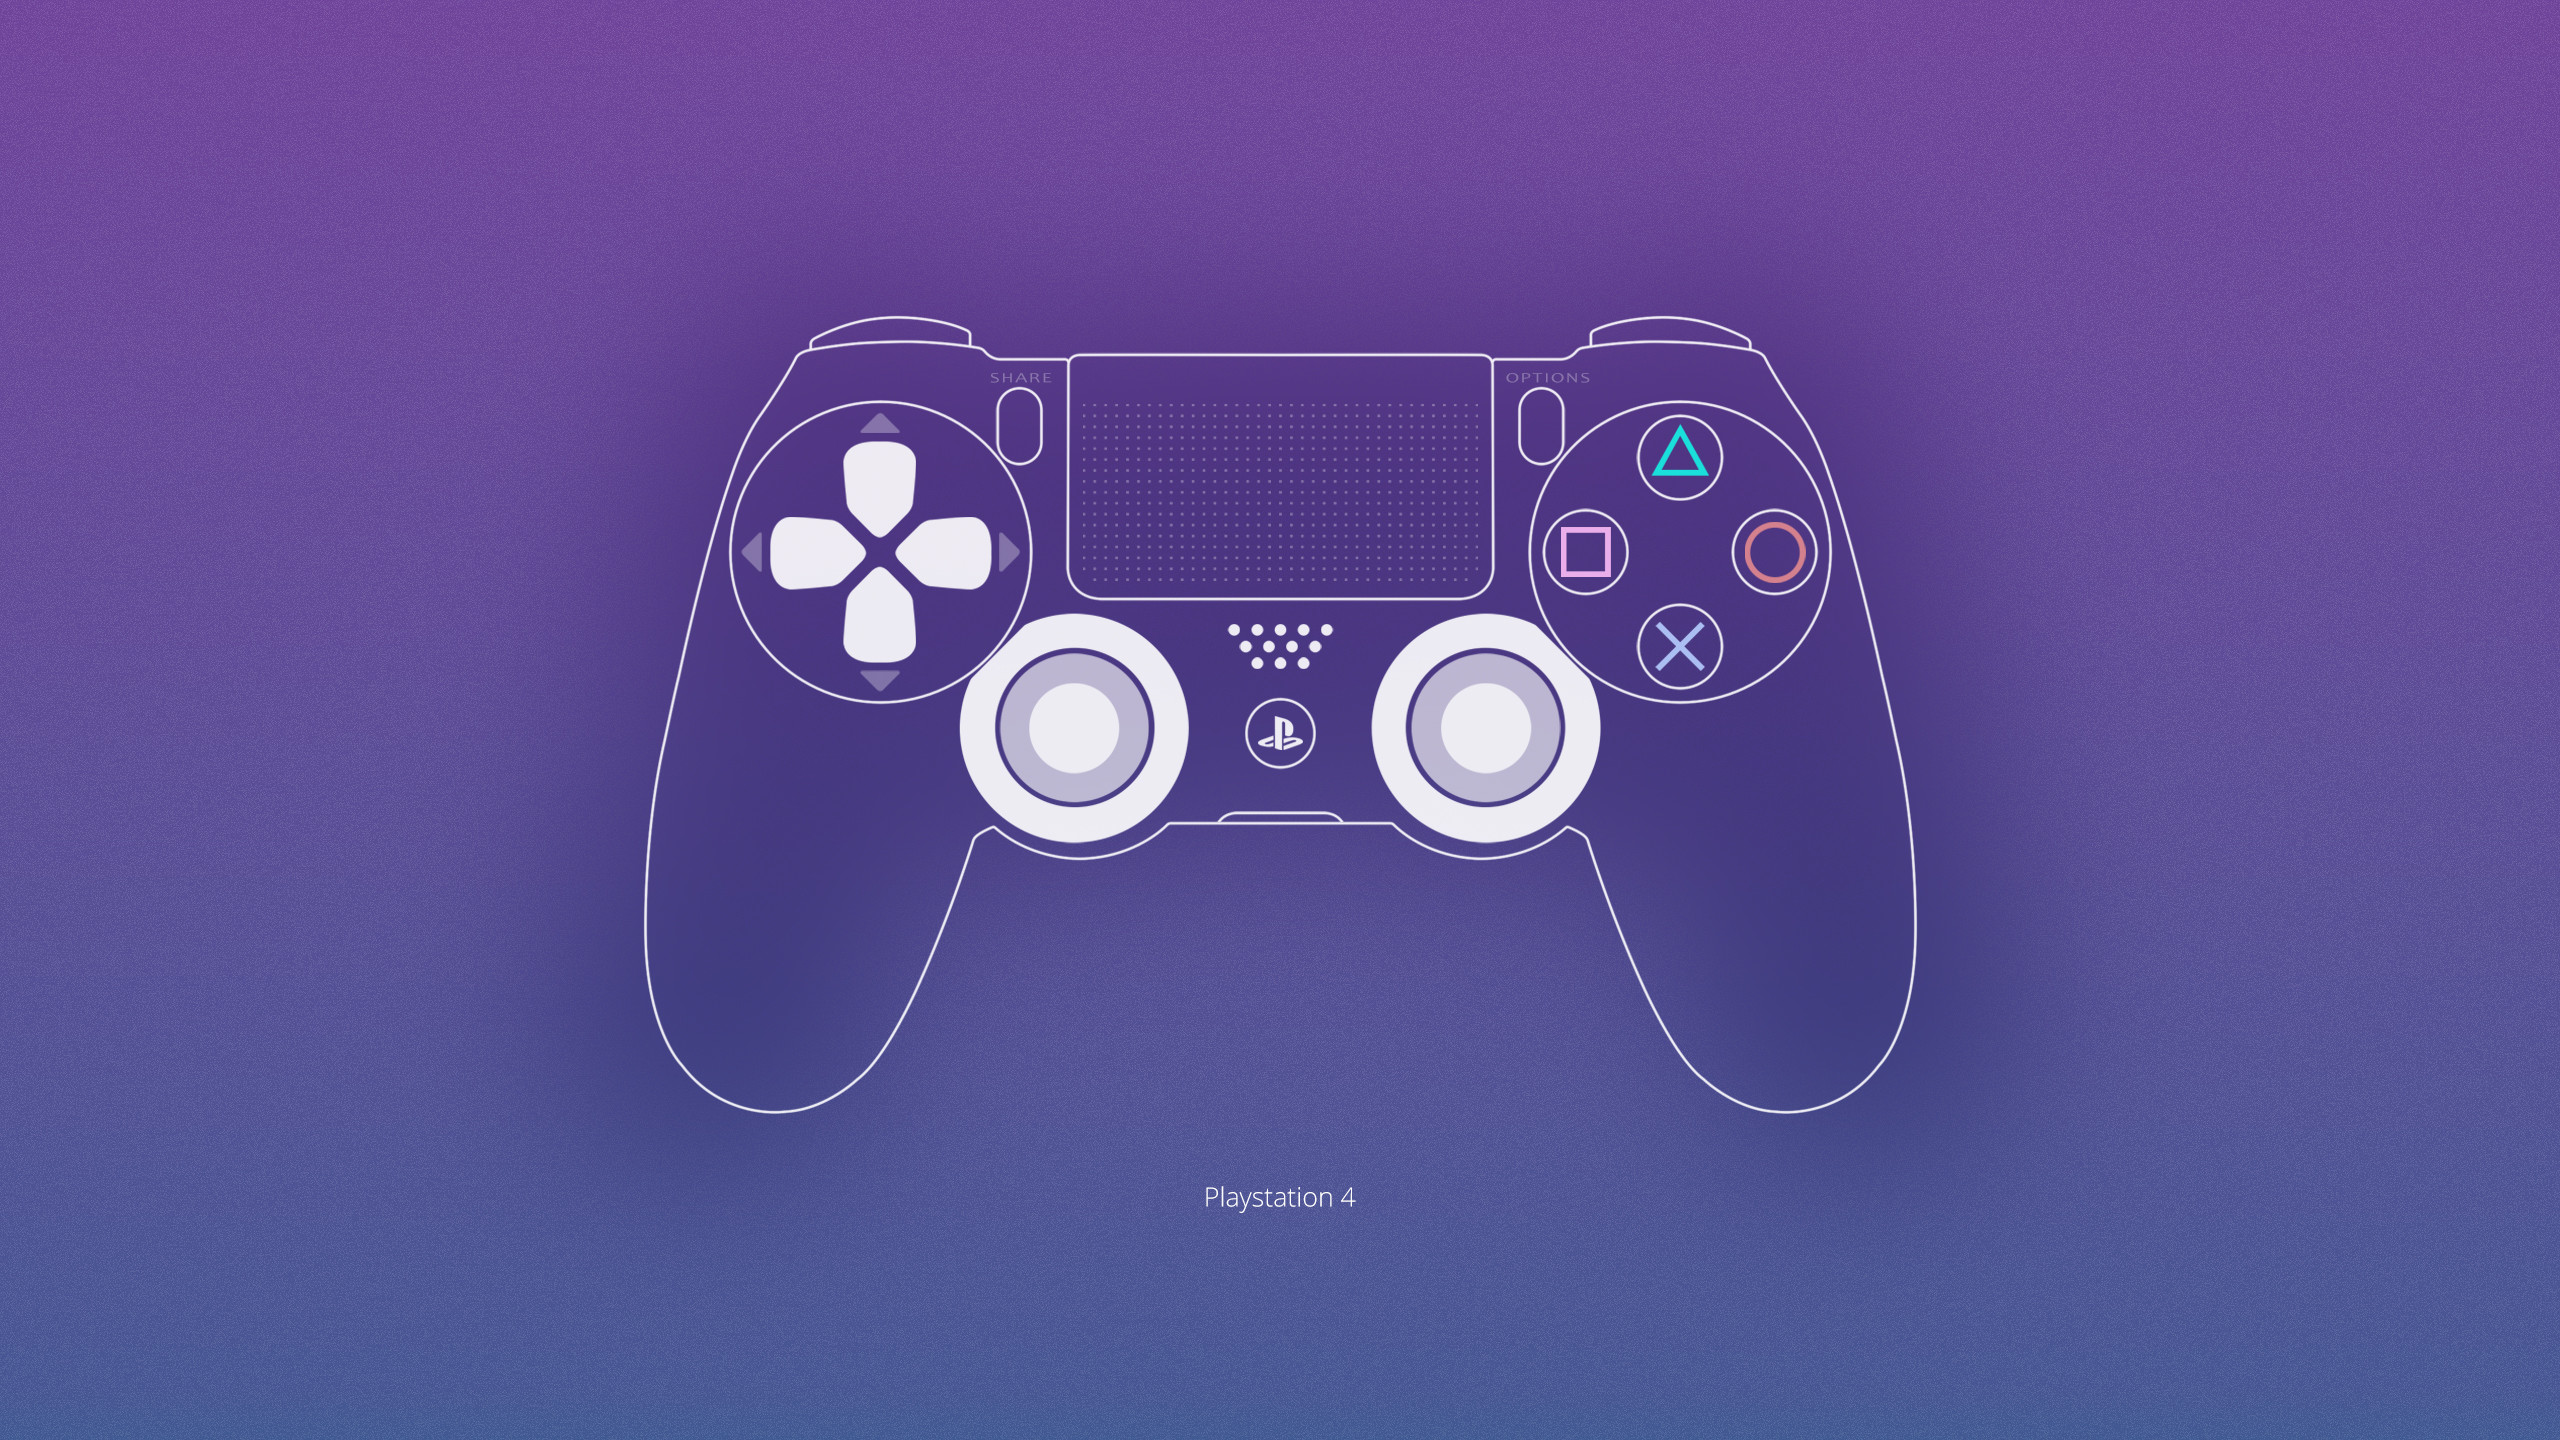 2560x1440 Playstation 4 Wallpaper by ljdesigner